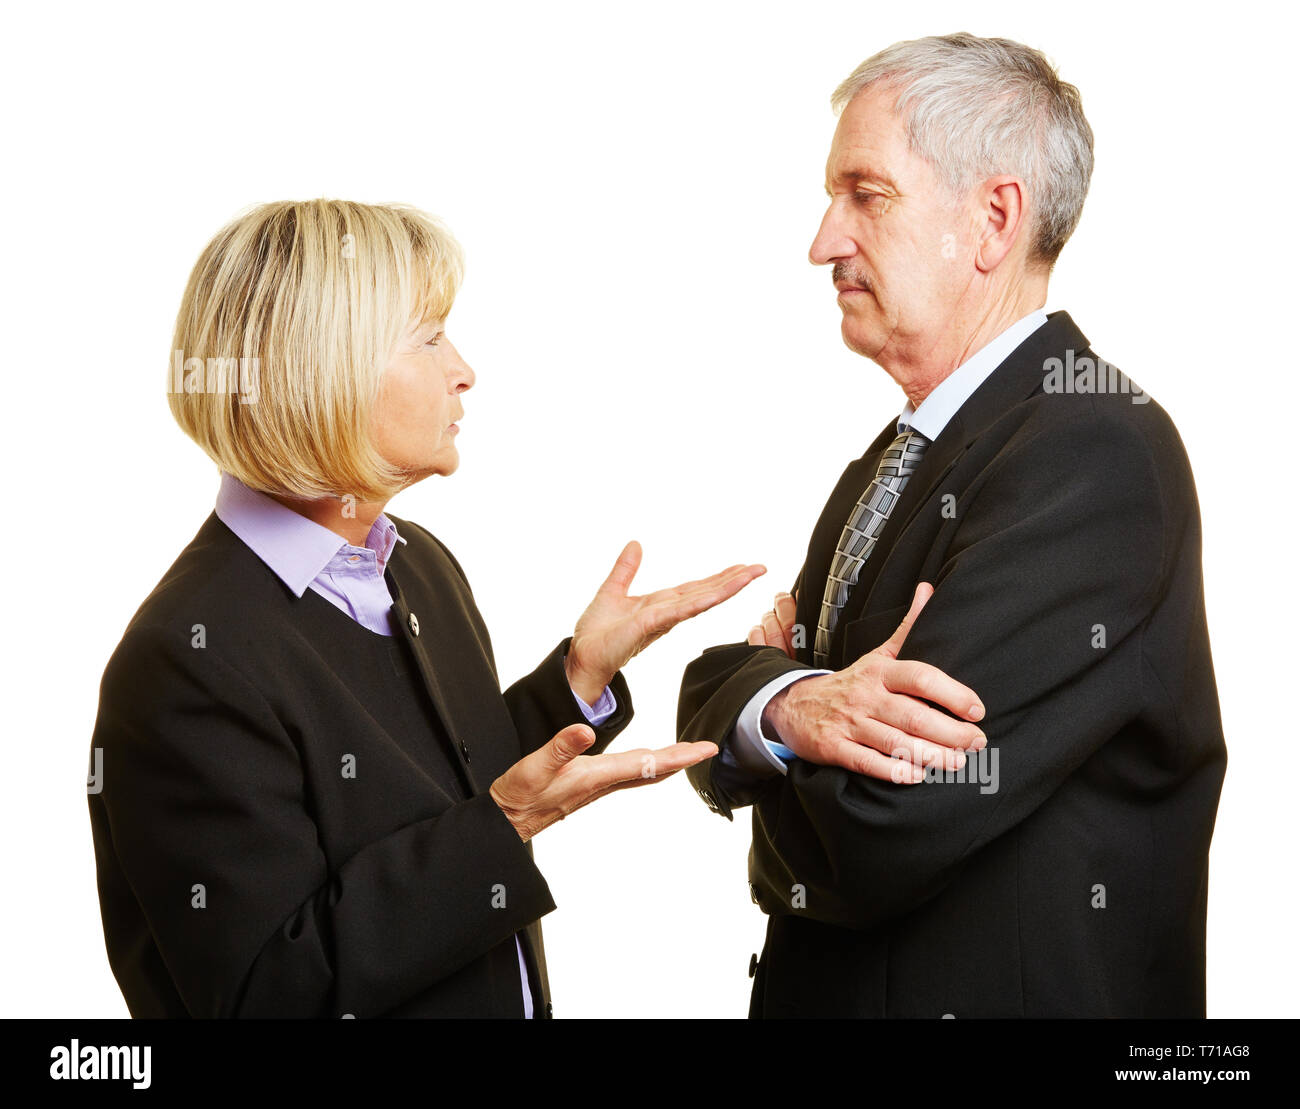 Couple of seniors in suit talking and arguing with each other - Stock Image